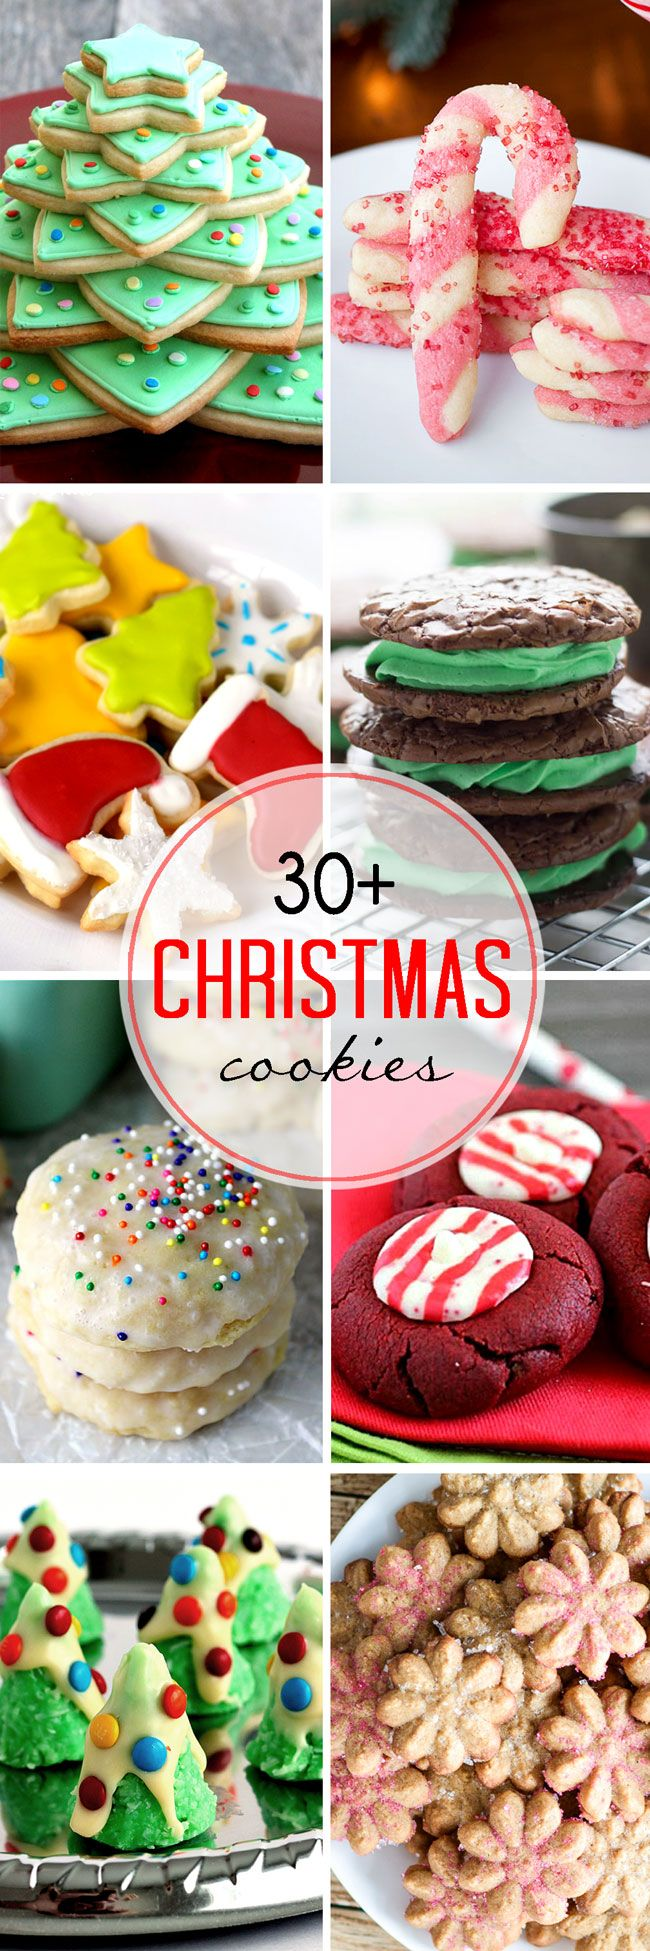 138 best Christmas cookies images on Pinterest | Cookies, Xmas and ...